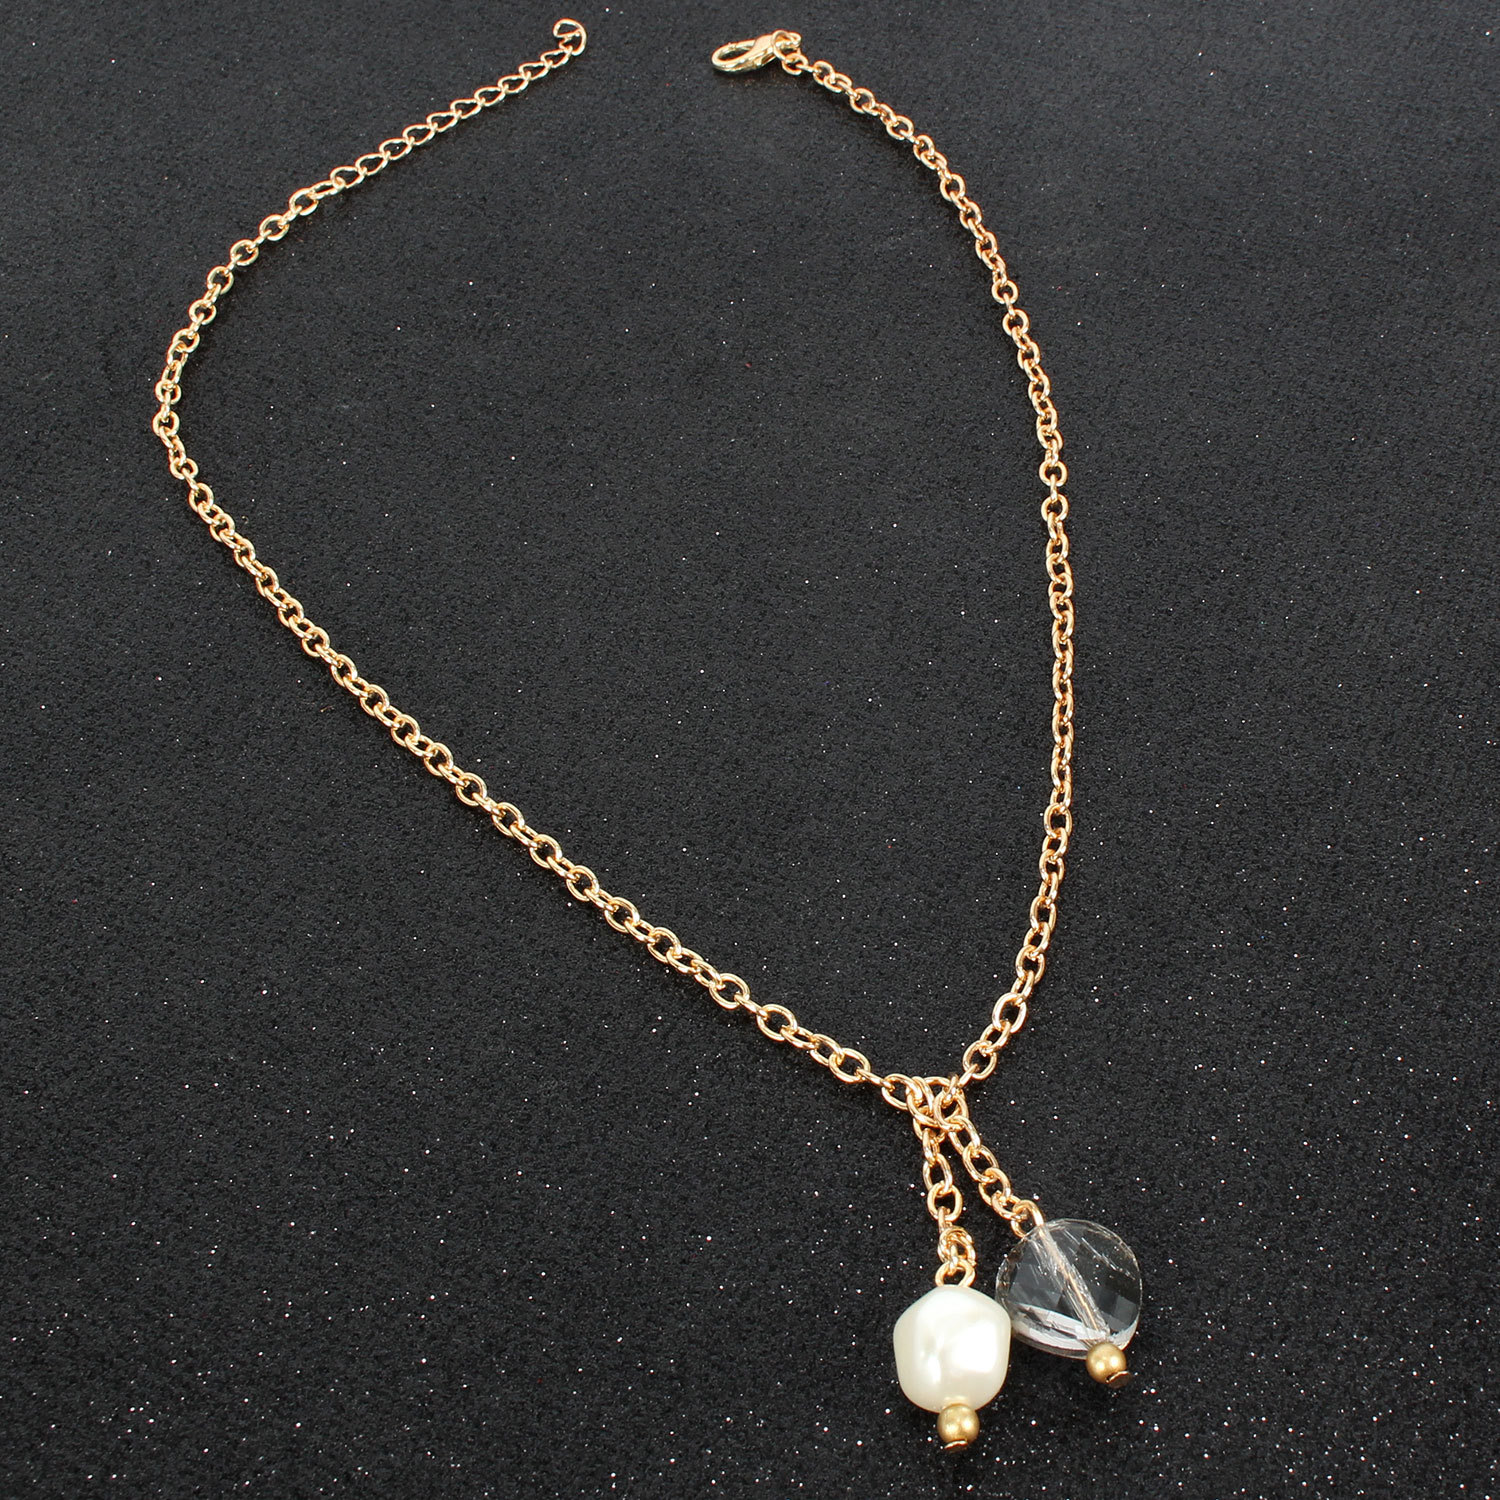 Fashion temperament personalized shaped imitated crystal beads necklace NHCT134404